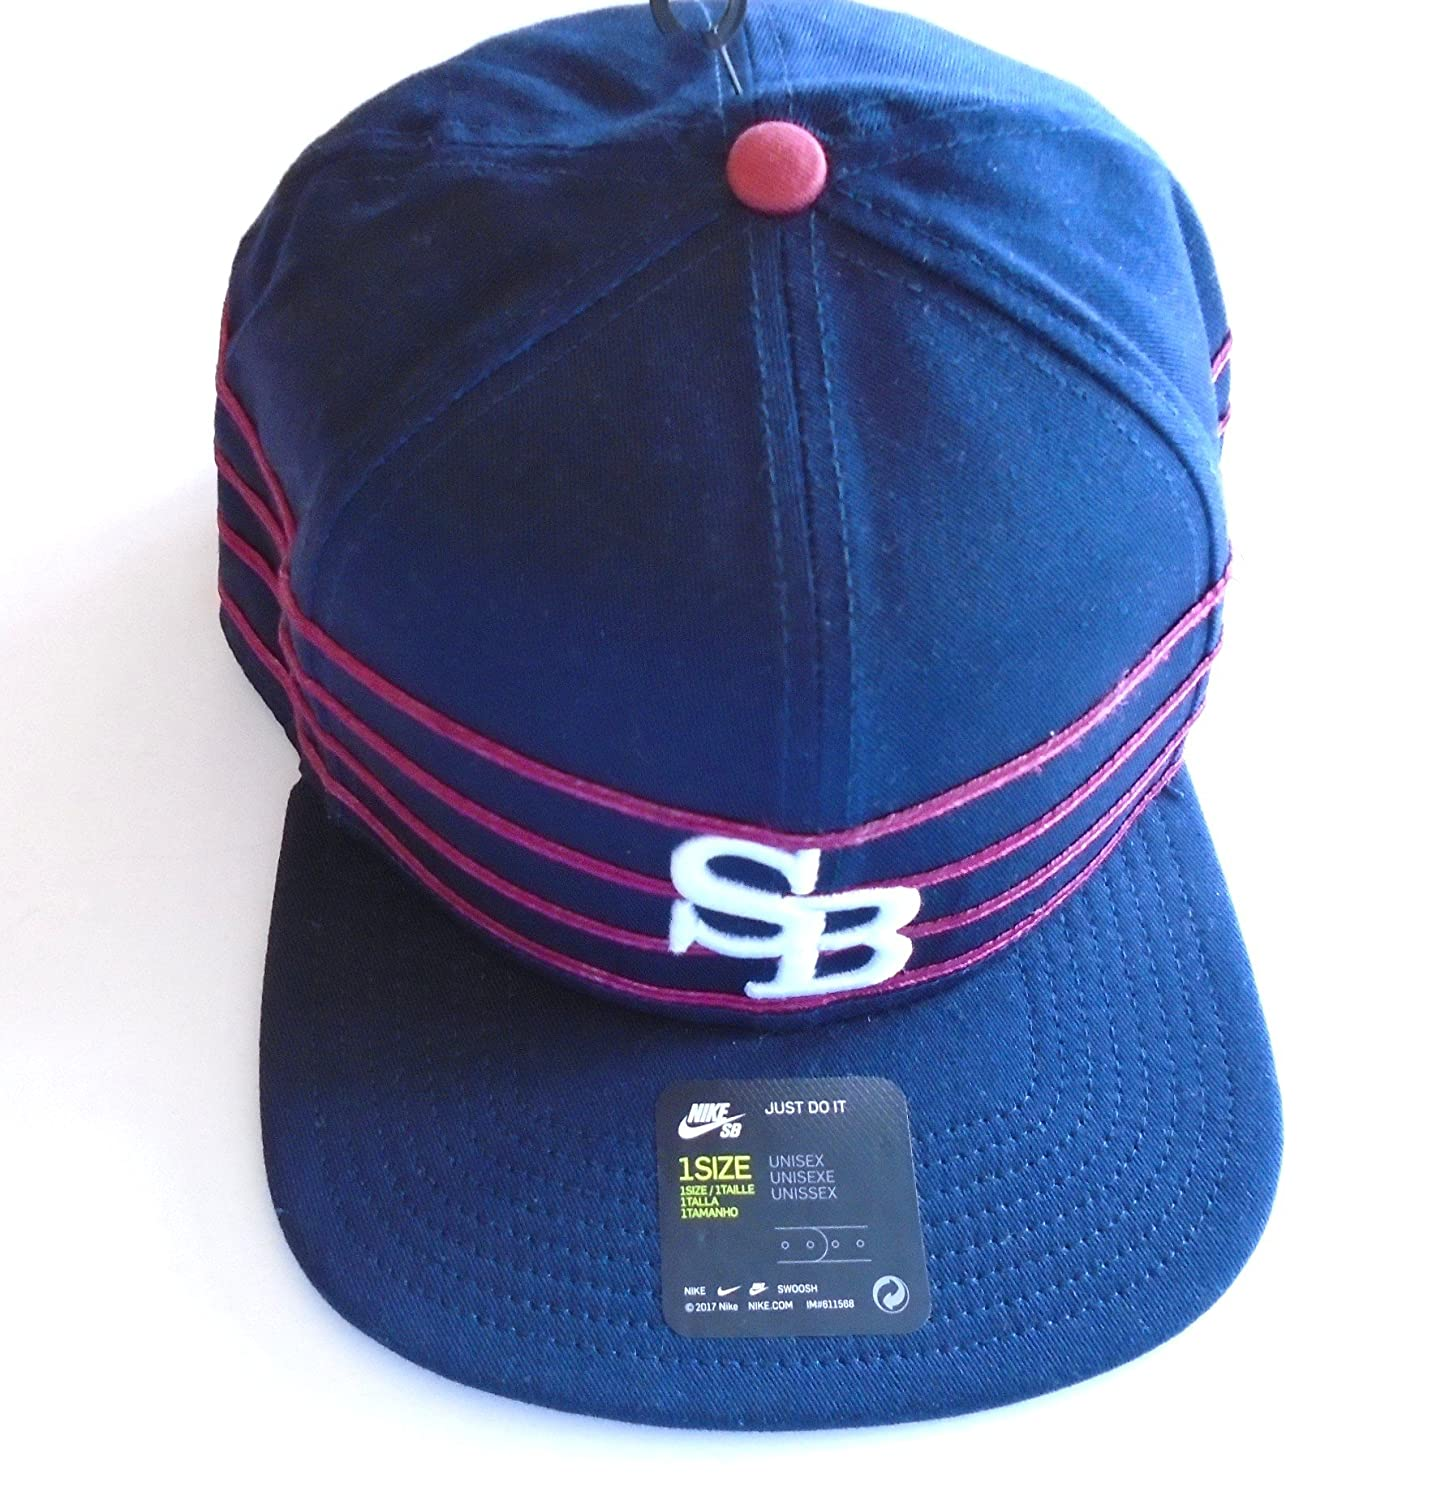 192fbac92b2 NIKE SB Skateboarding Icon Pro Stripes Snapback Hat Ramp Up Cap (Navy  Blue Red White Logo)  Amazon.ca  Sports   Outdoors